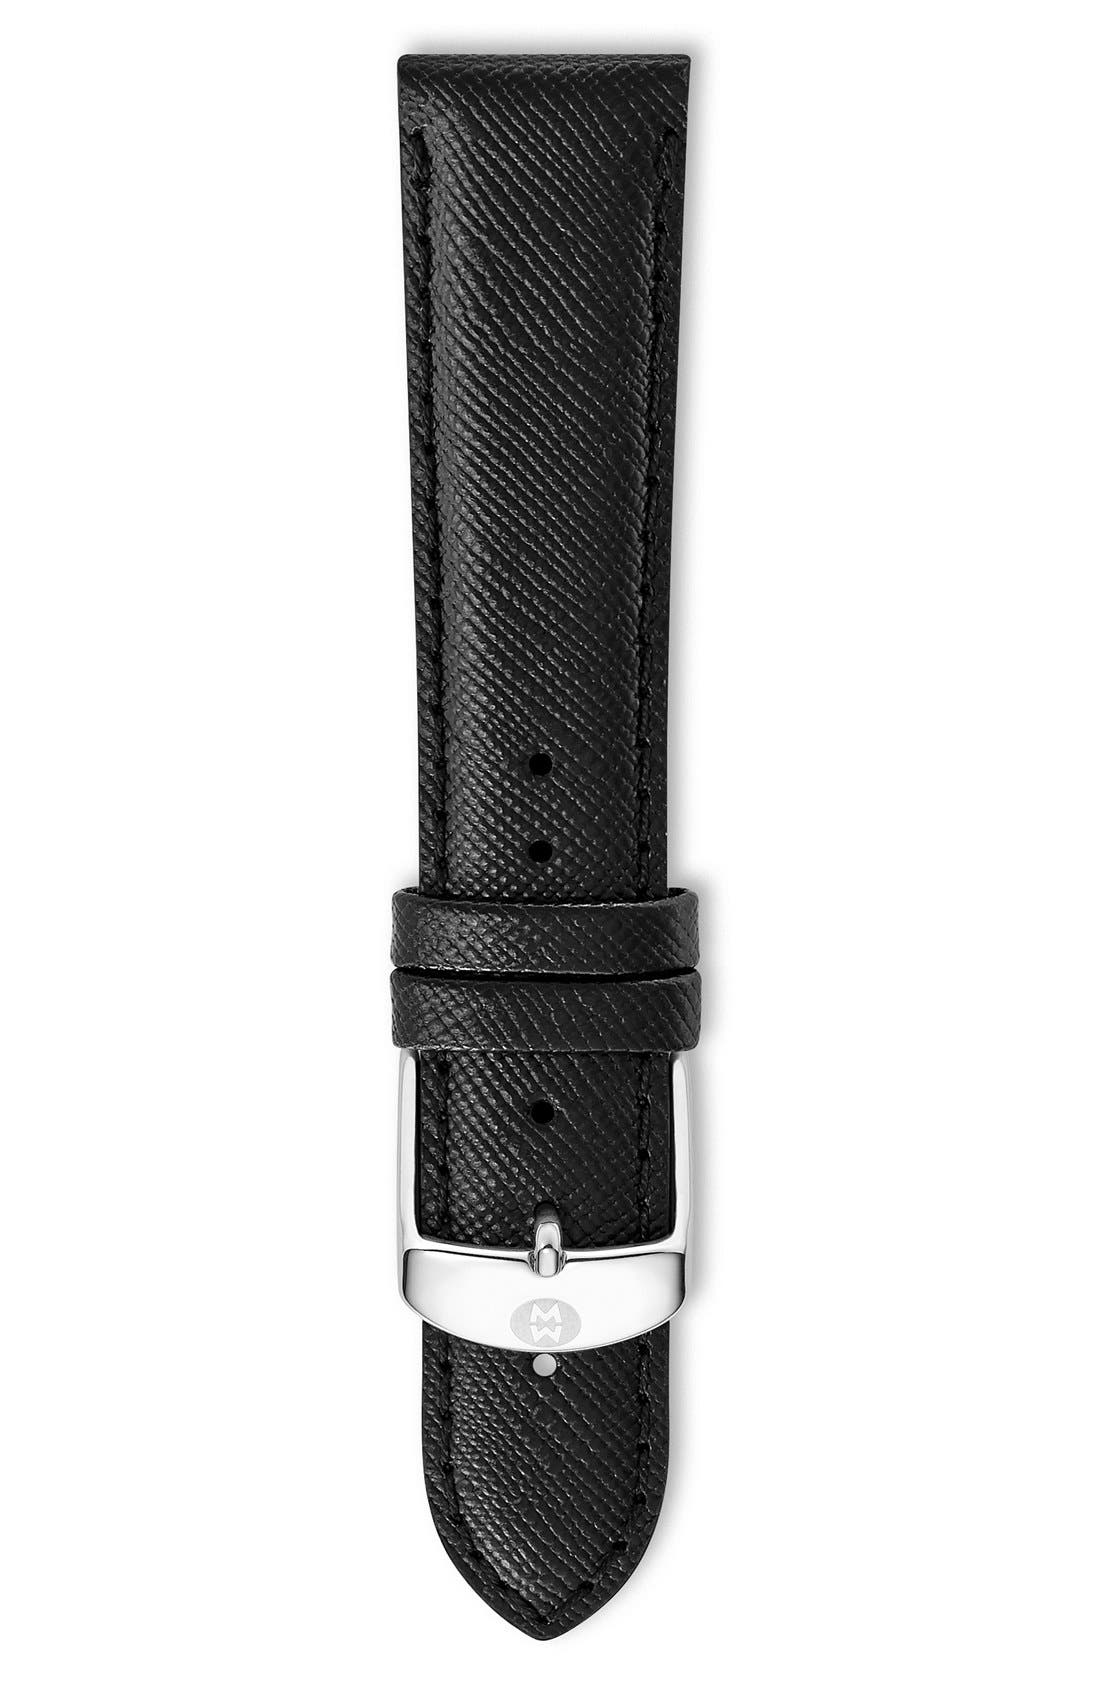 20mm Saffiano Leather Watch Strap,                         Main,                         color, 001